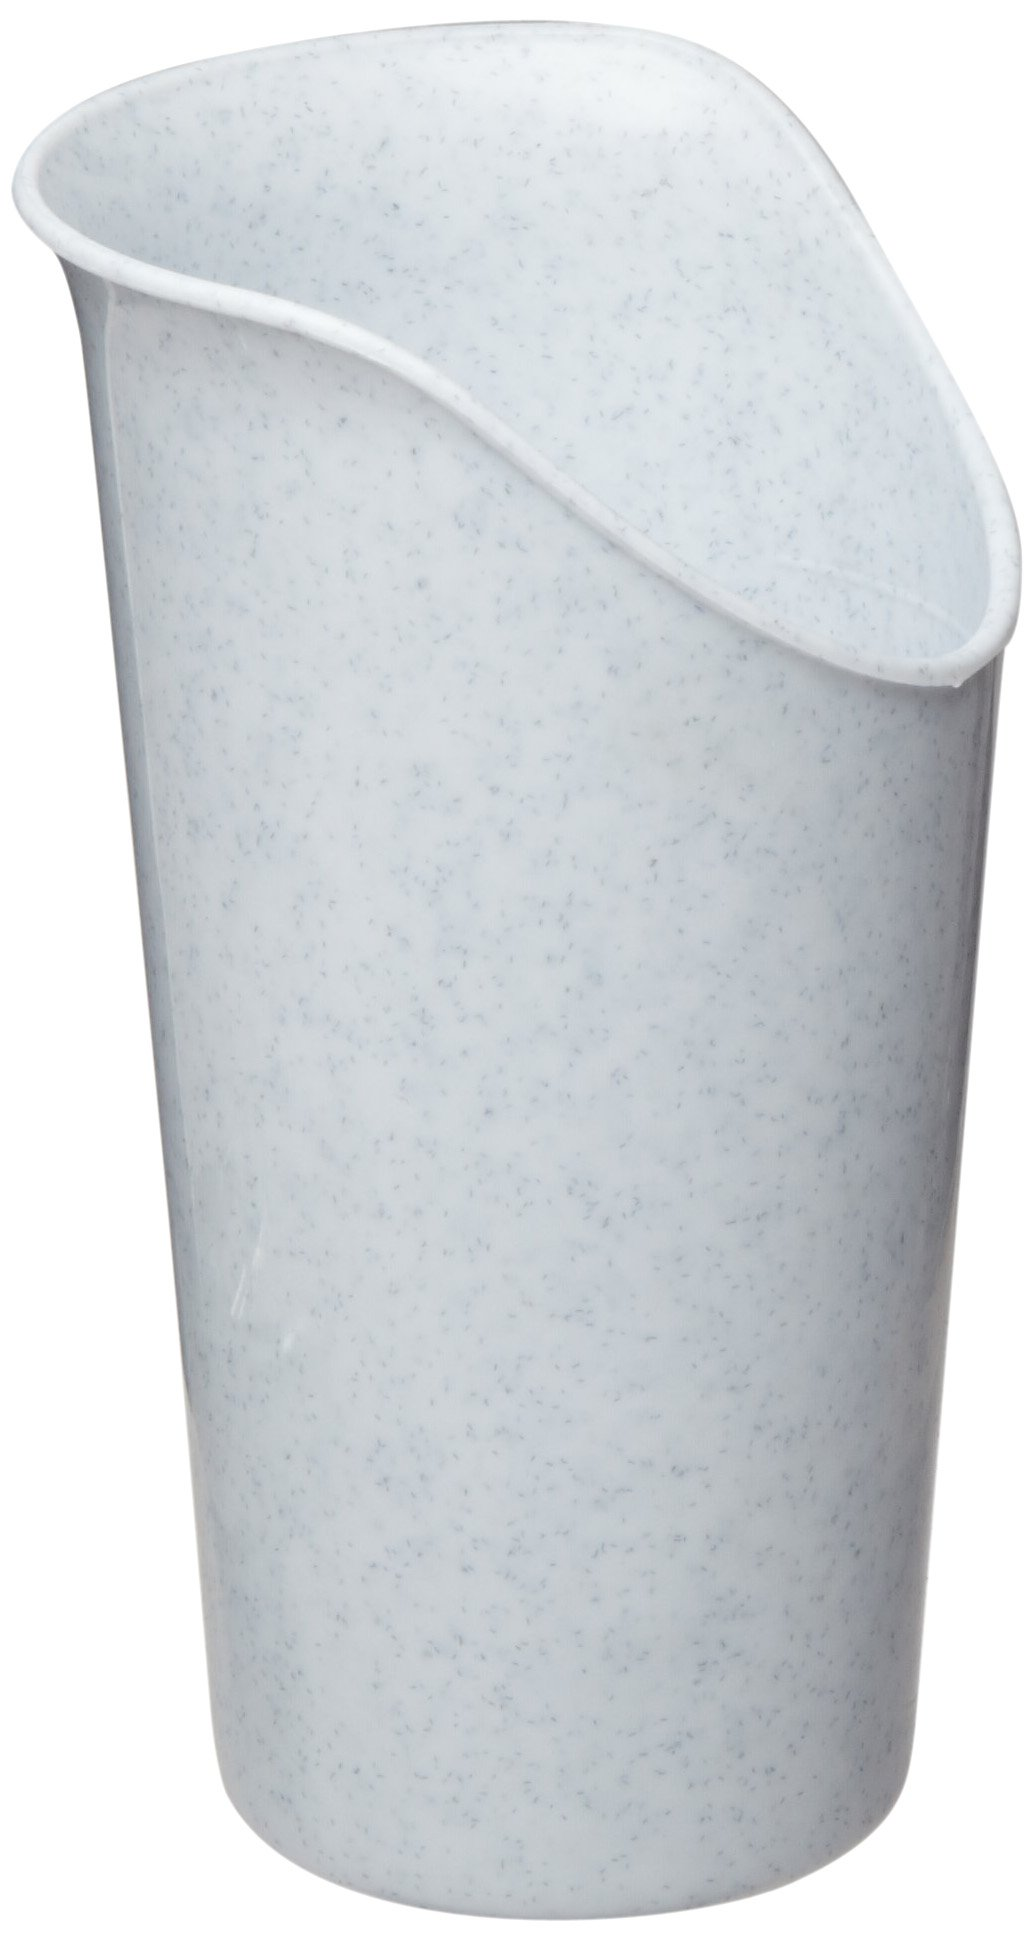 Ableware 745930613 Light Blue Nosey Cup Light Blue (Box of 6)